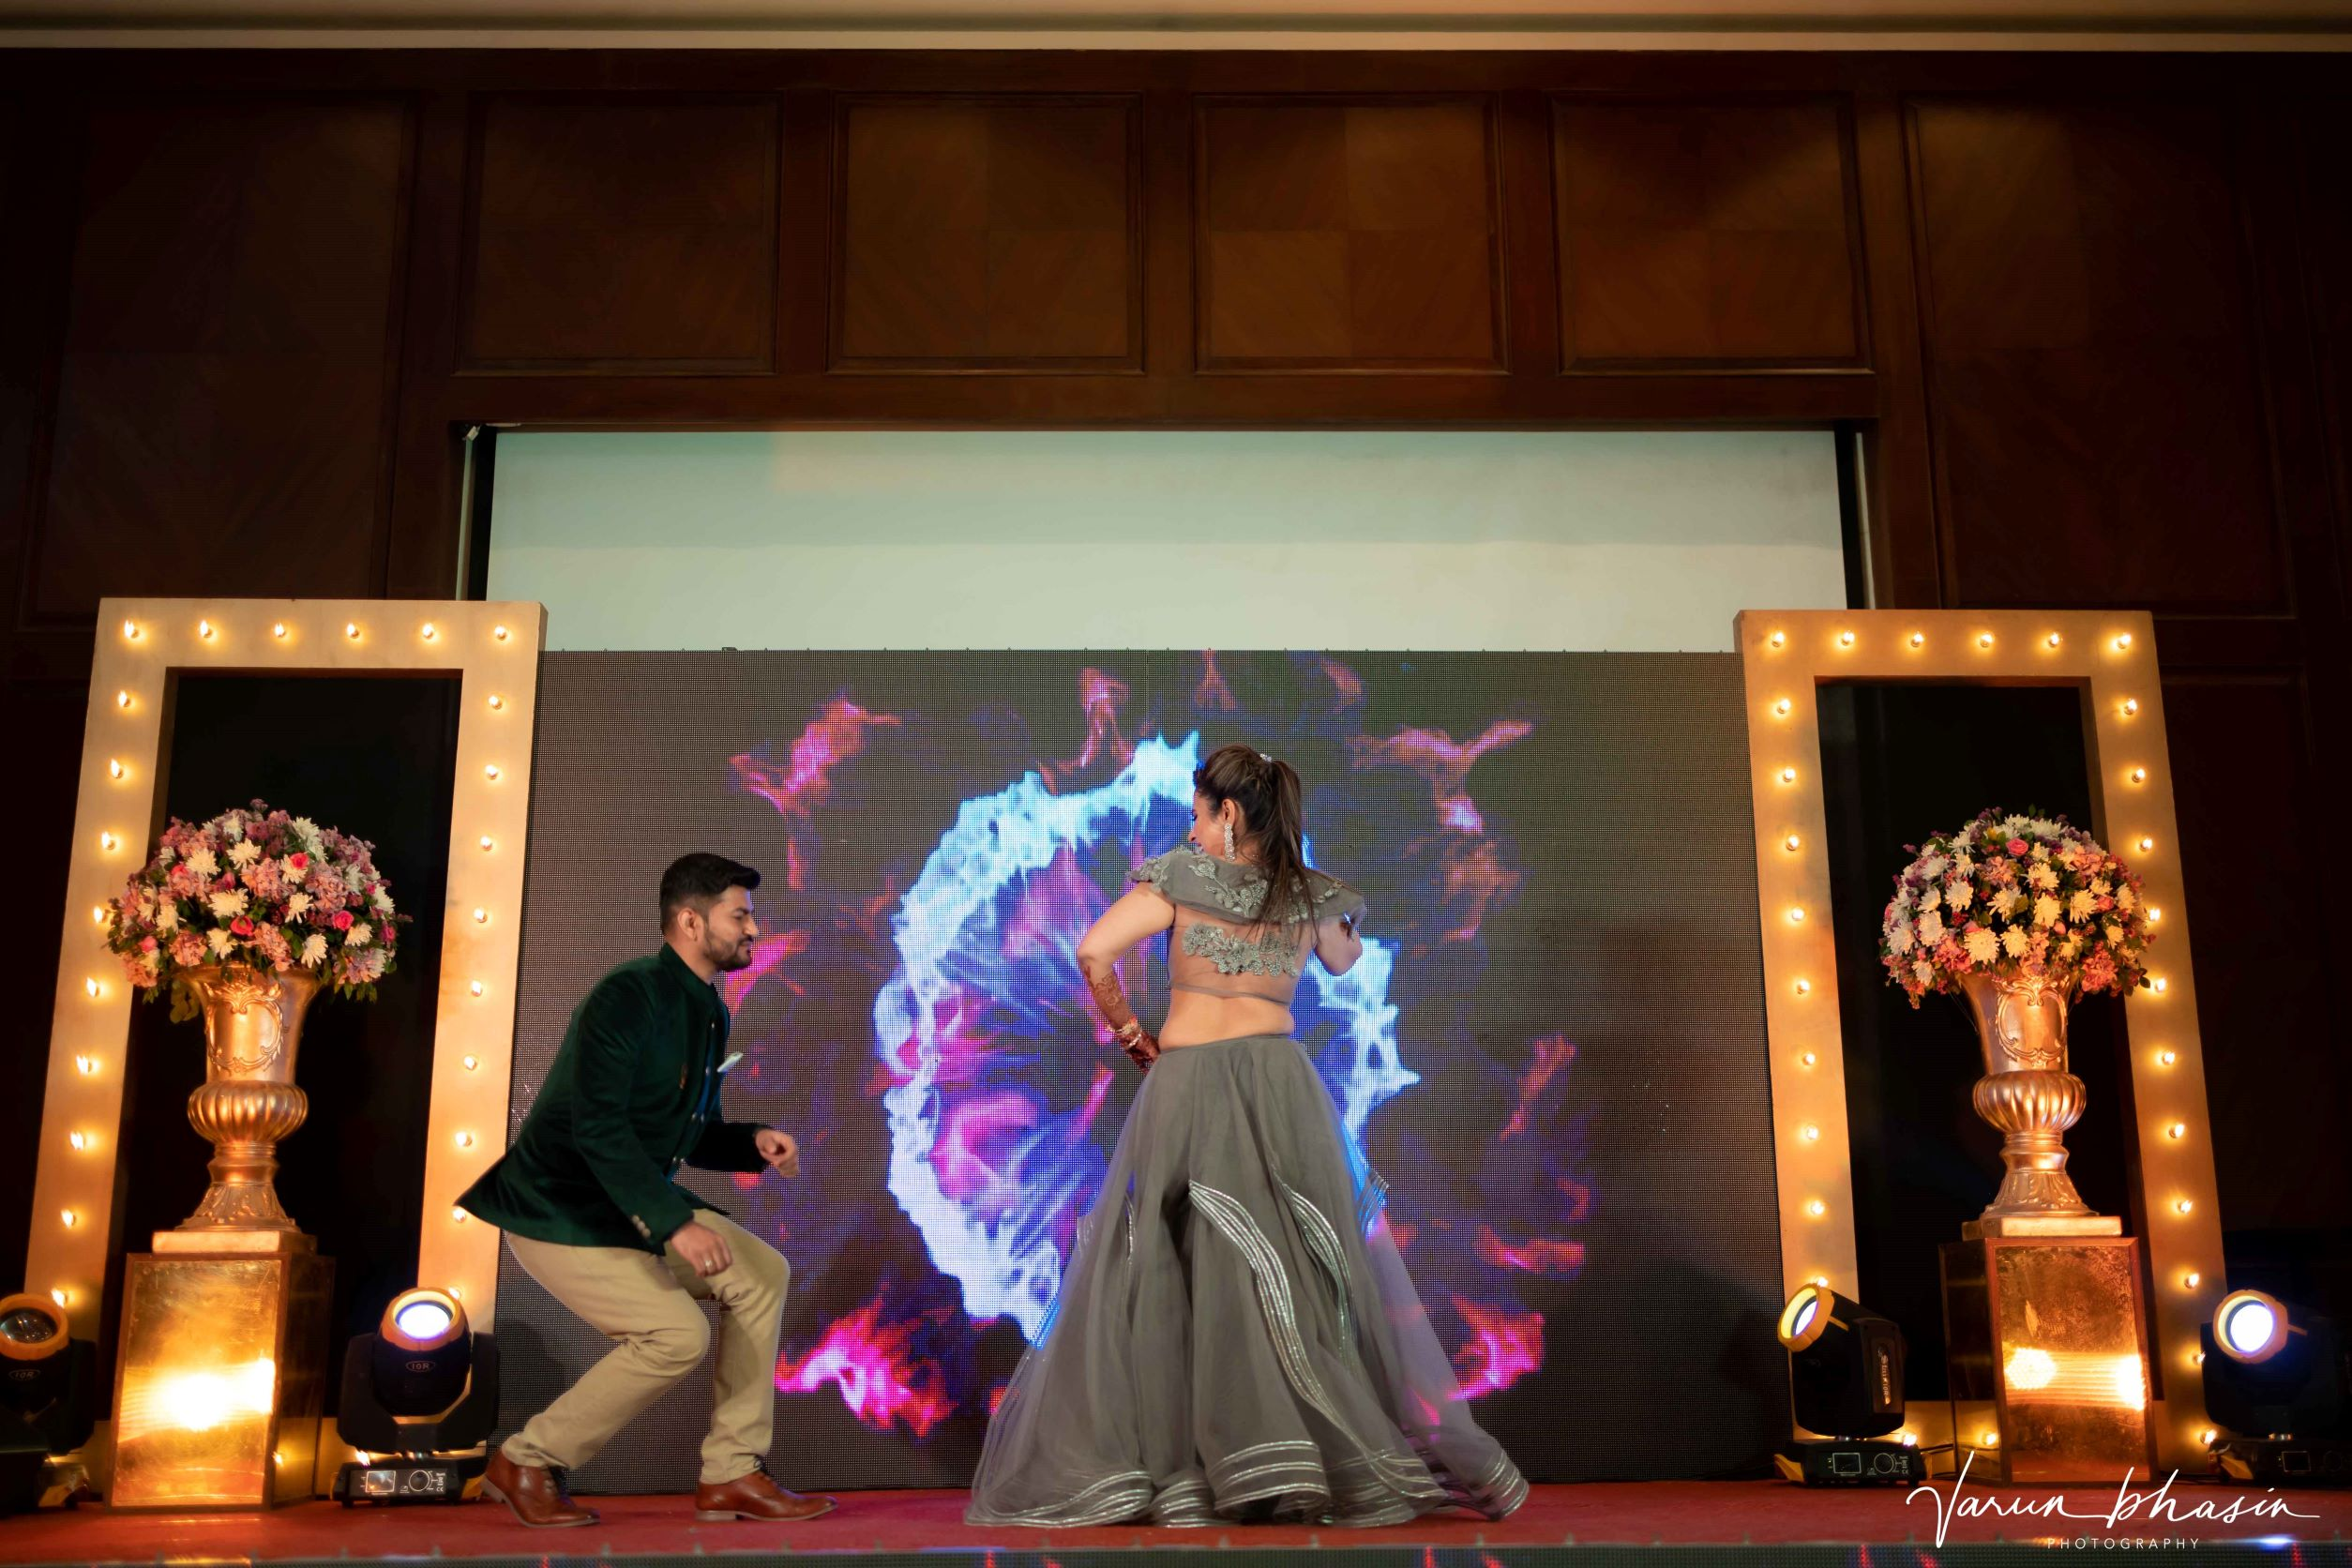 couple dancing on stage